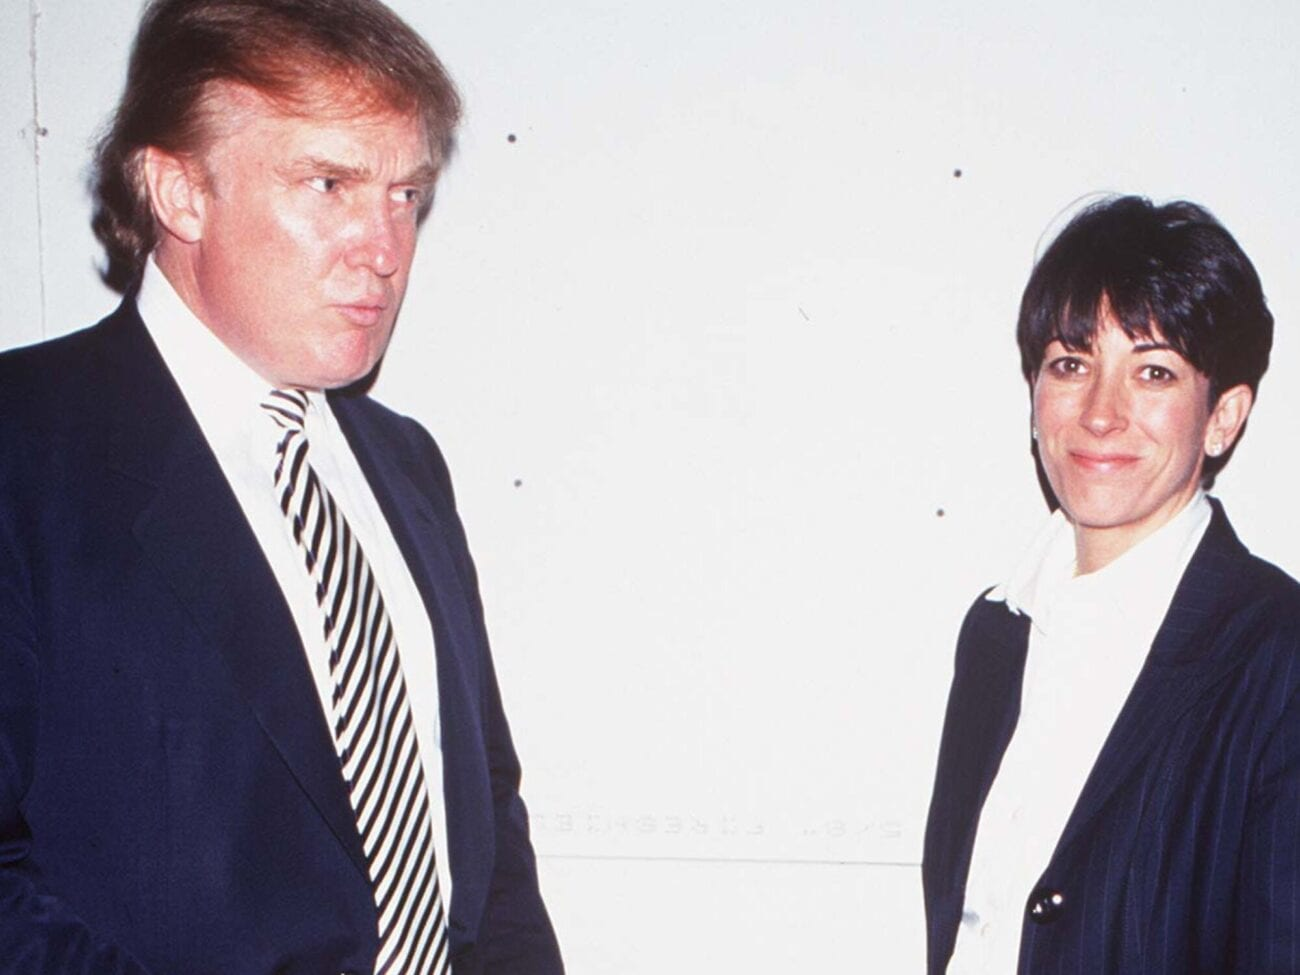 Just how close were Jeffrey Epstein's ex-lover and the former US President? See the photos of Ghislaine Maxwell and Donald Trump here.